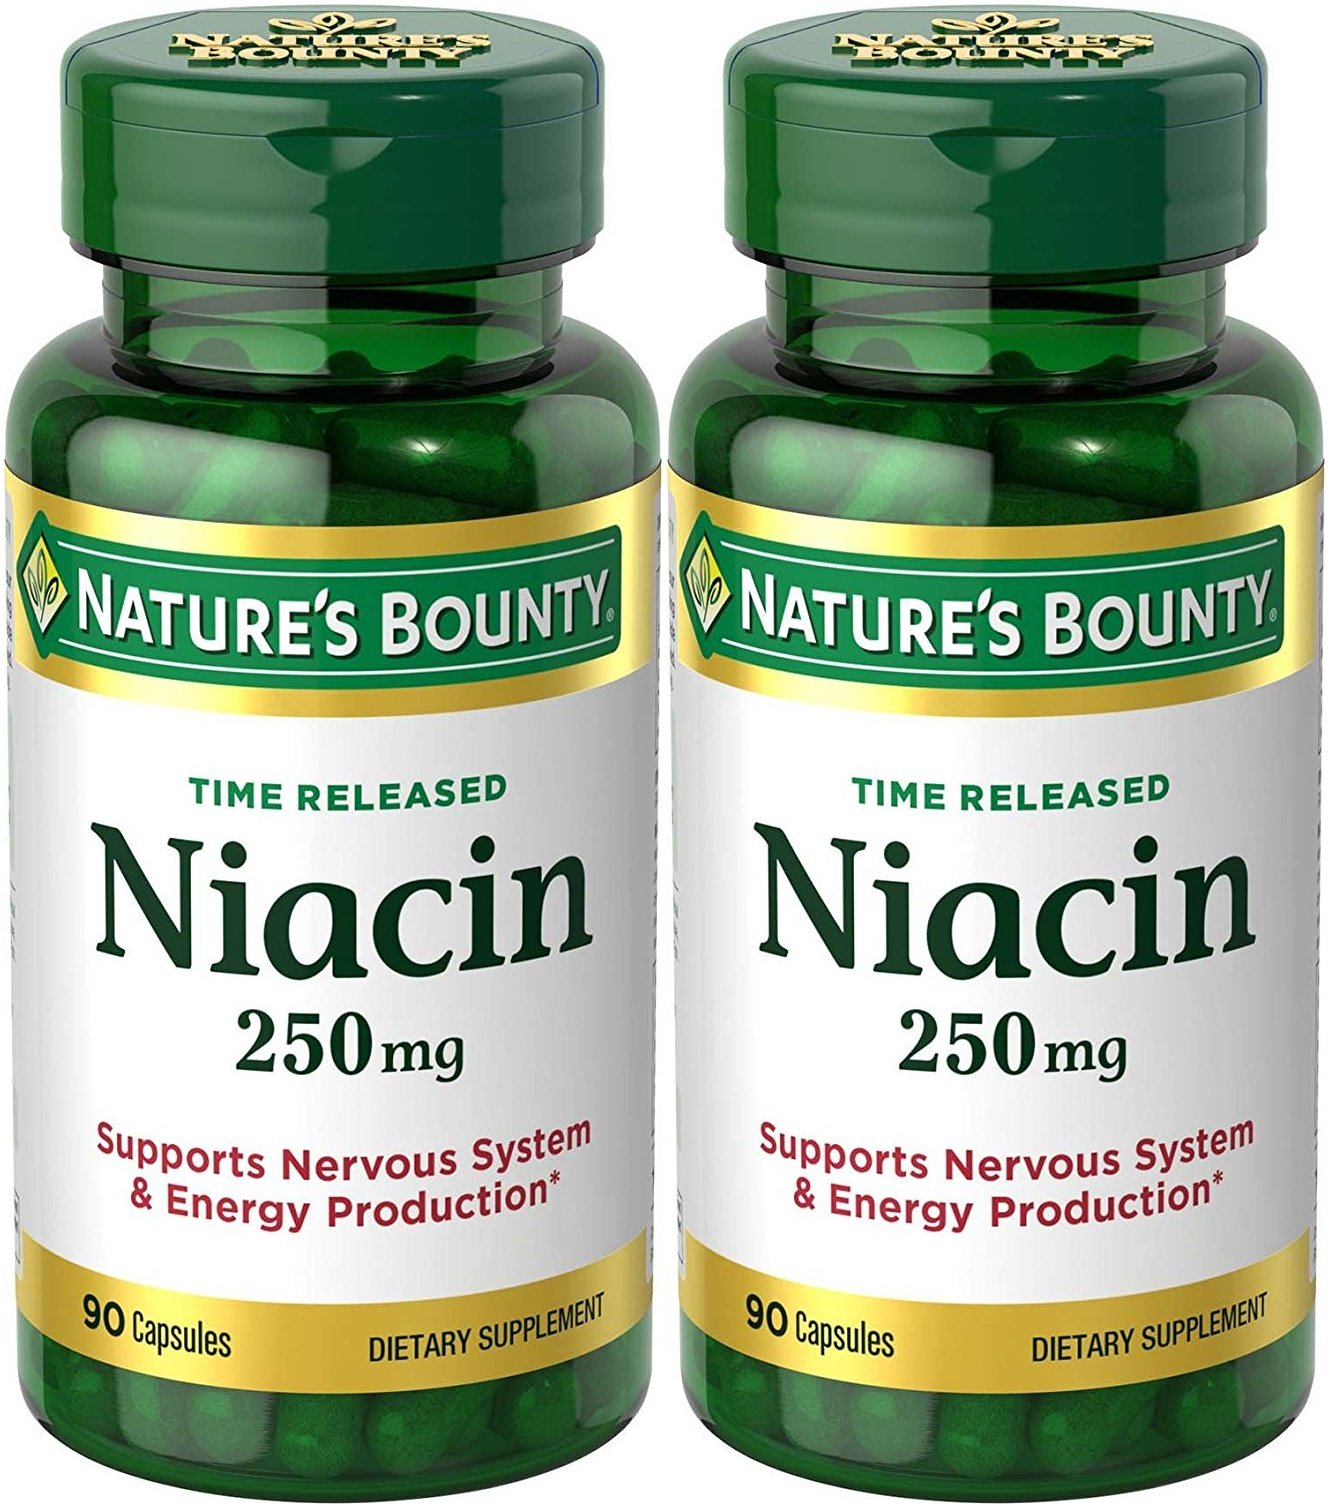 Nature's Bounty, Niacin, Time Released, 250 mg, 90 Capsules - 2pc